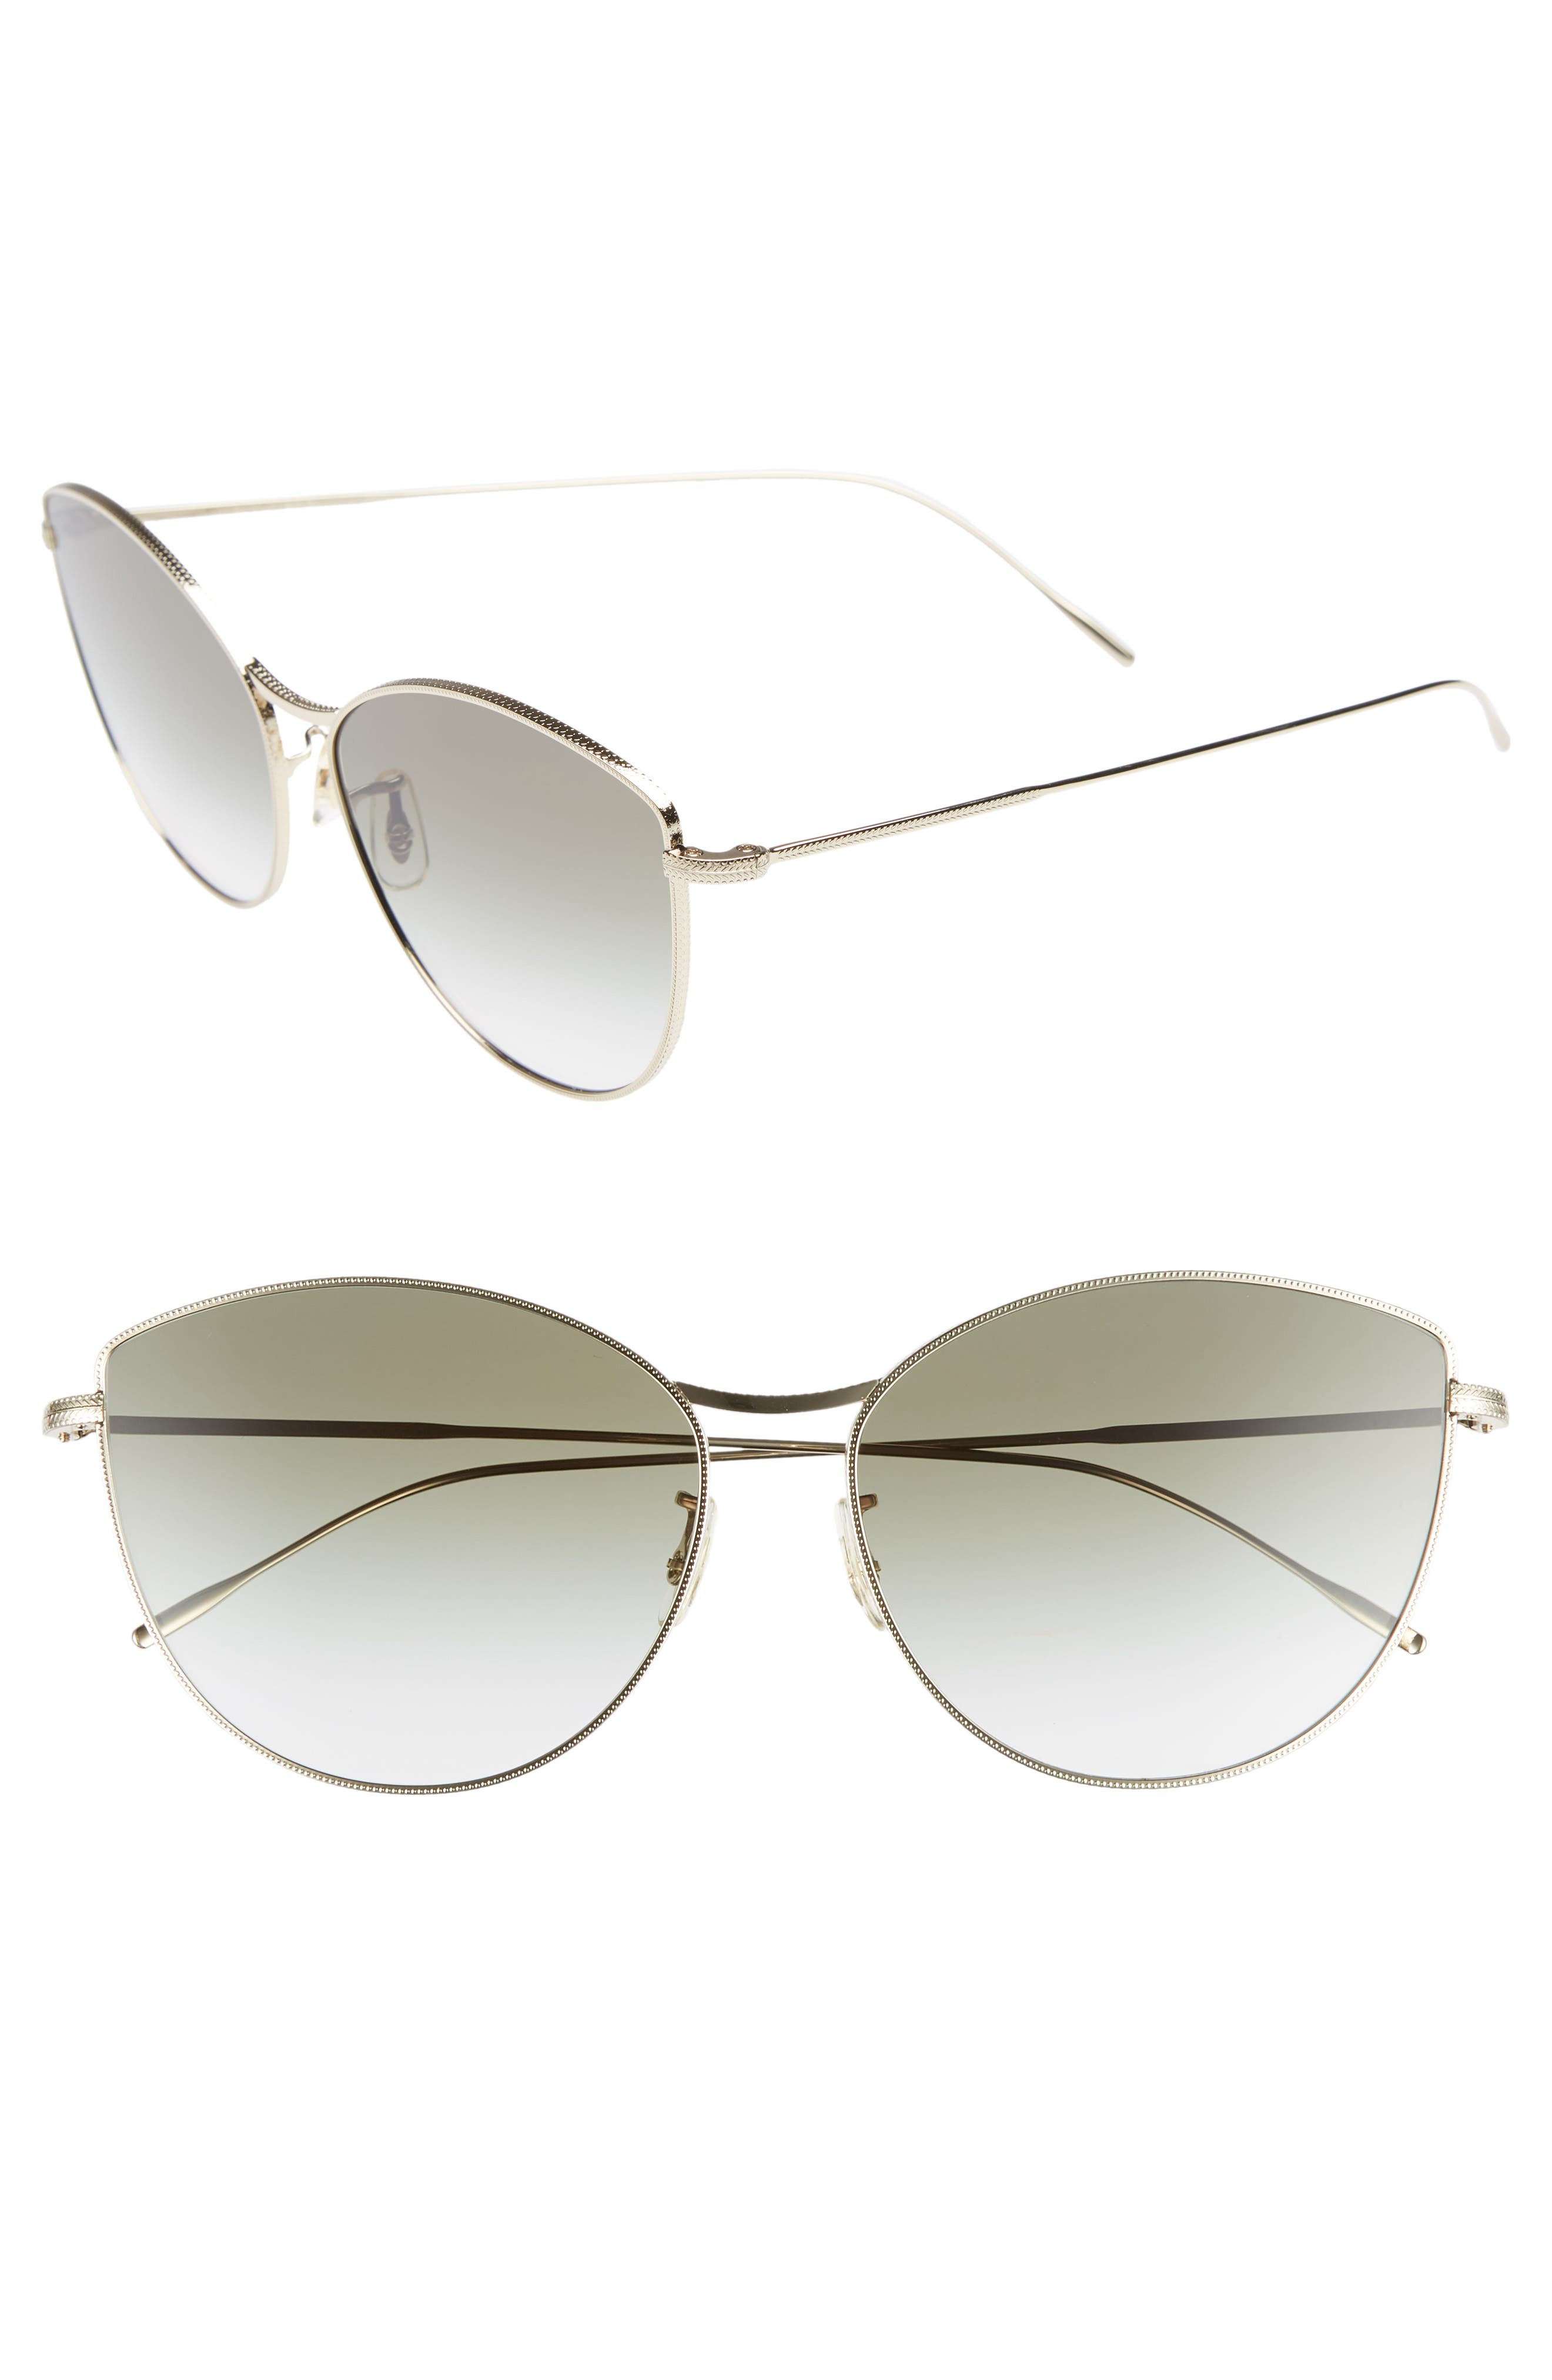 Rayette 60mm Cat Eye Sunglasses,                             Main thumbnail 1, color,                             Soft Gold Olive